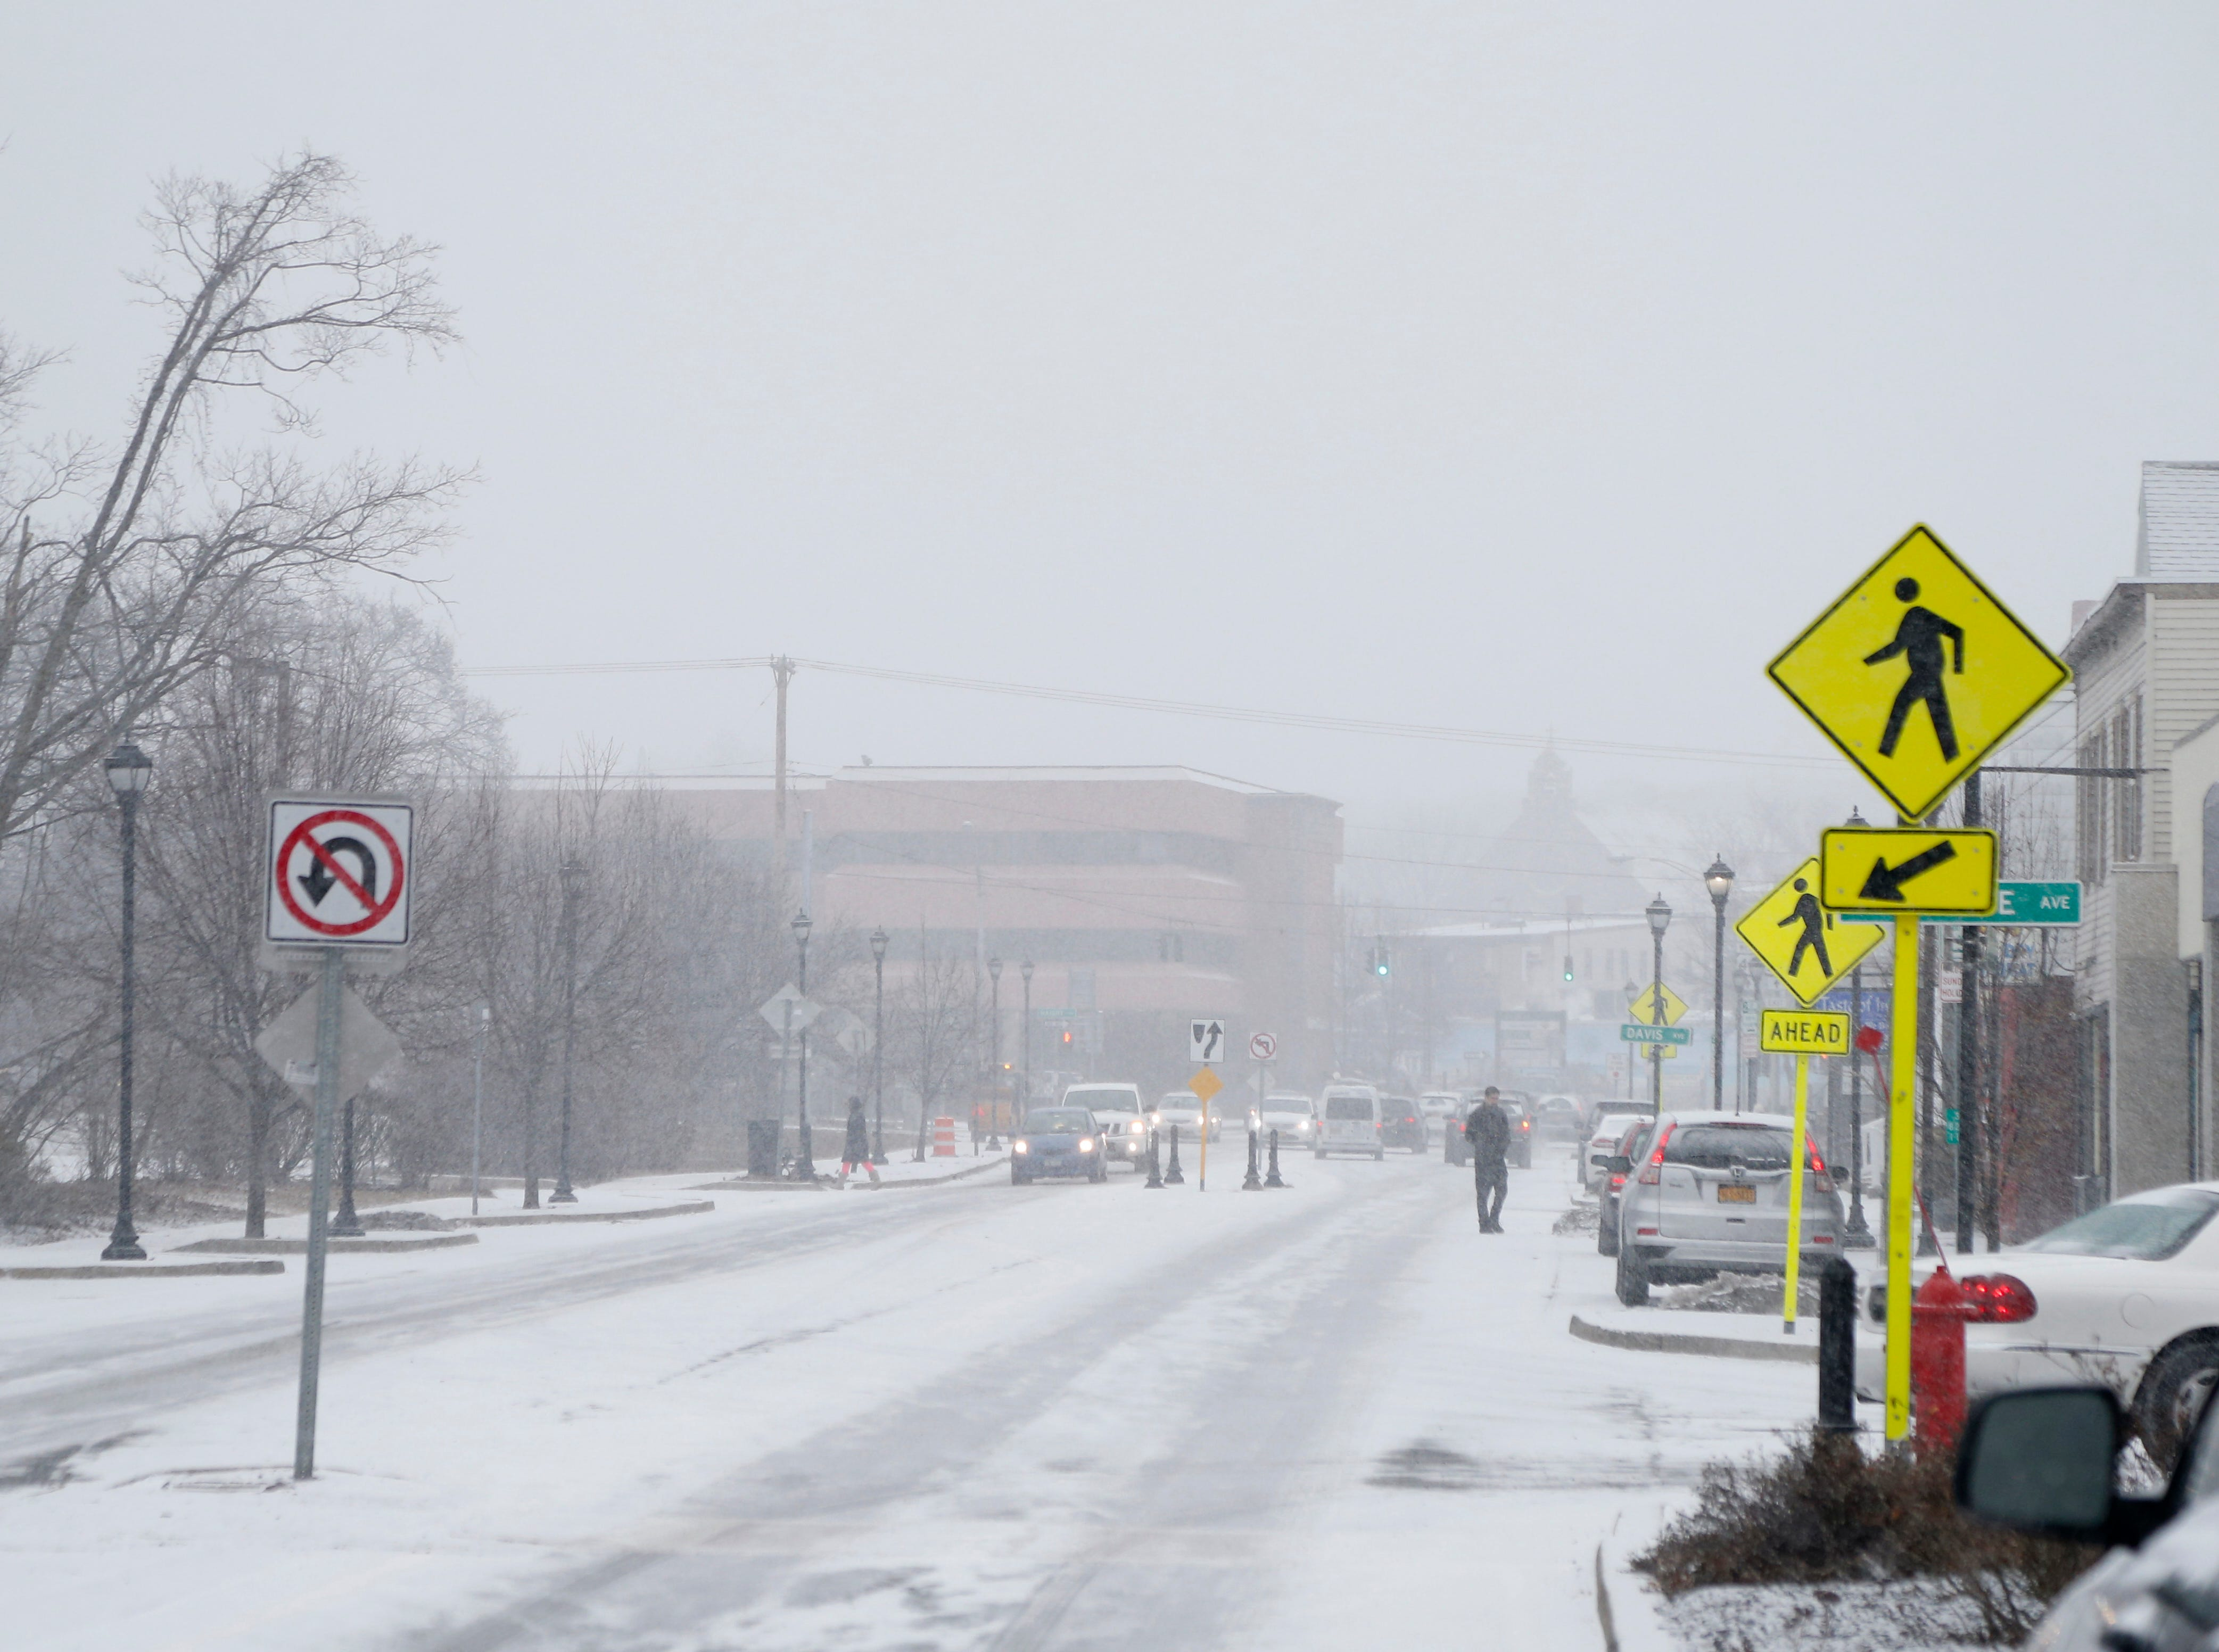 Snow falls along Raymond Avenue the Arlington Business District of the Town of Poughkeepsie on February 12, 2019.